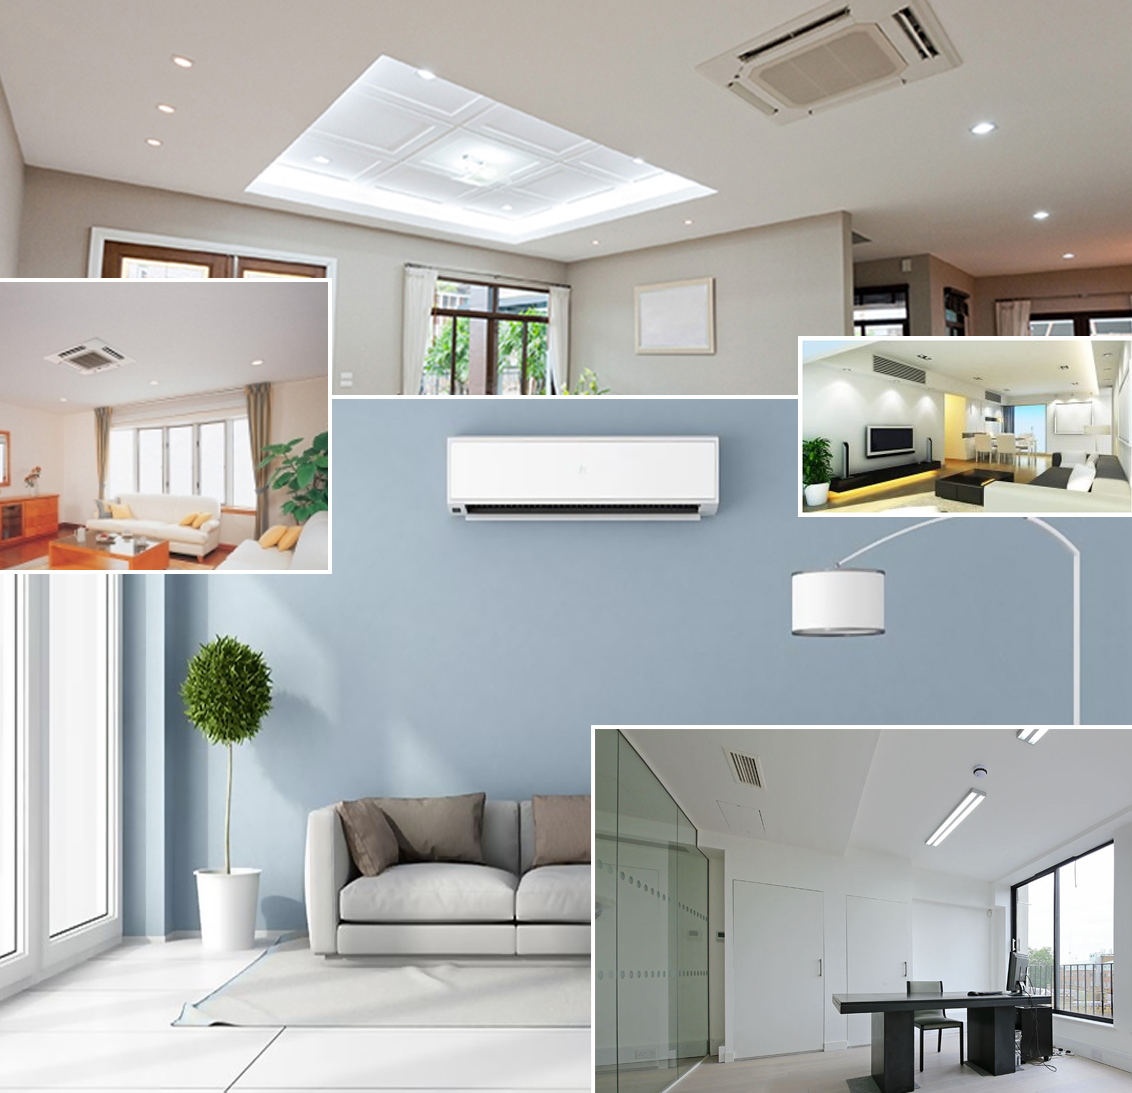 airconditioning nw london